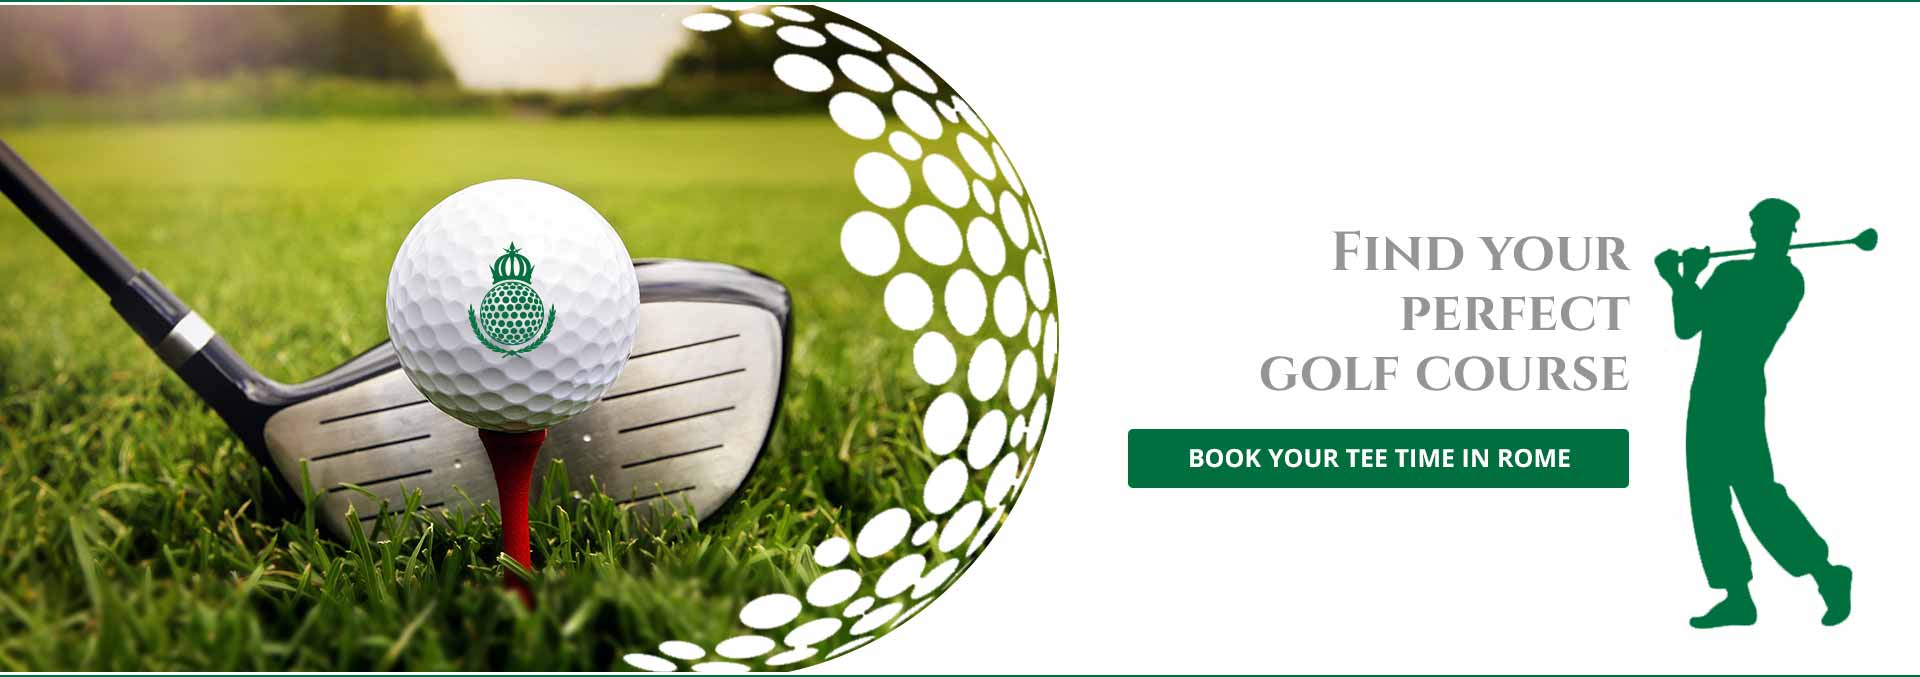 Golf clubs and courses in Rome